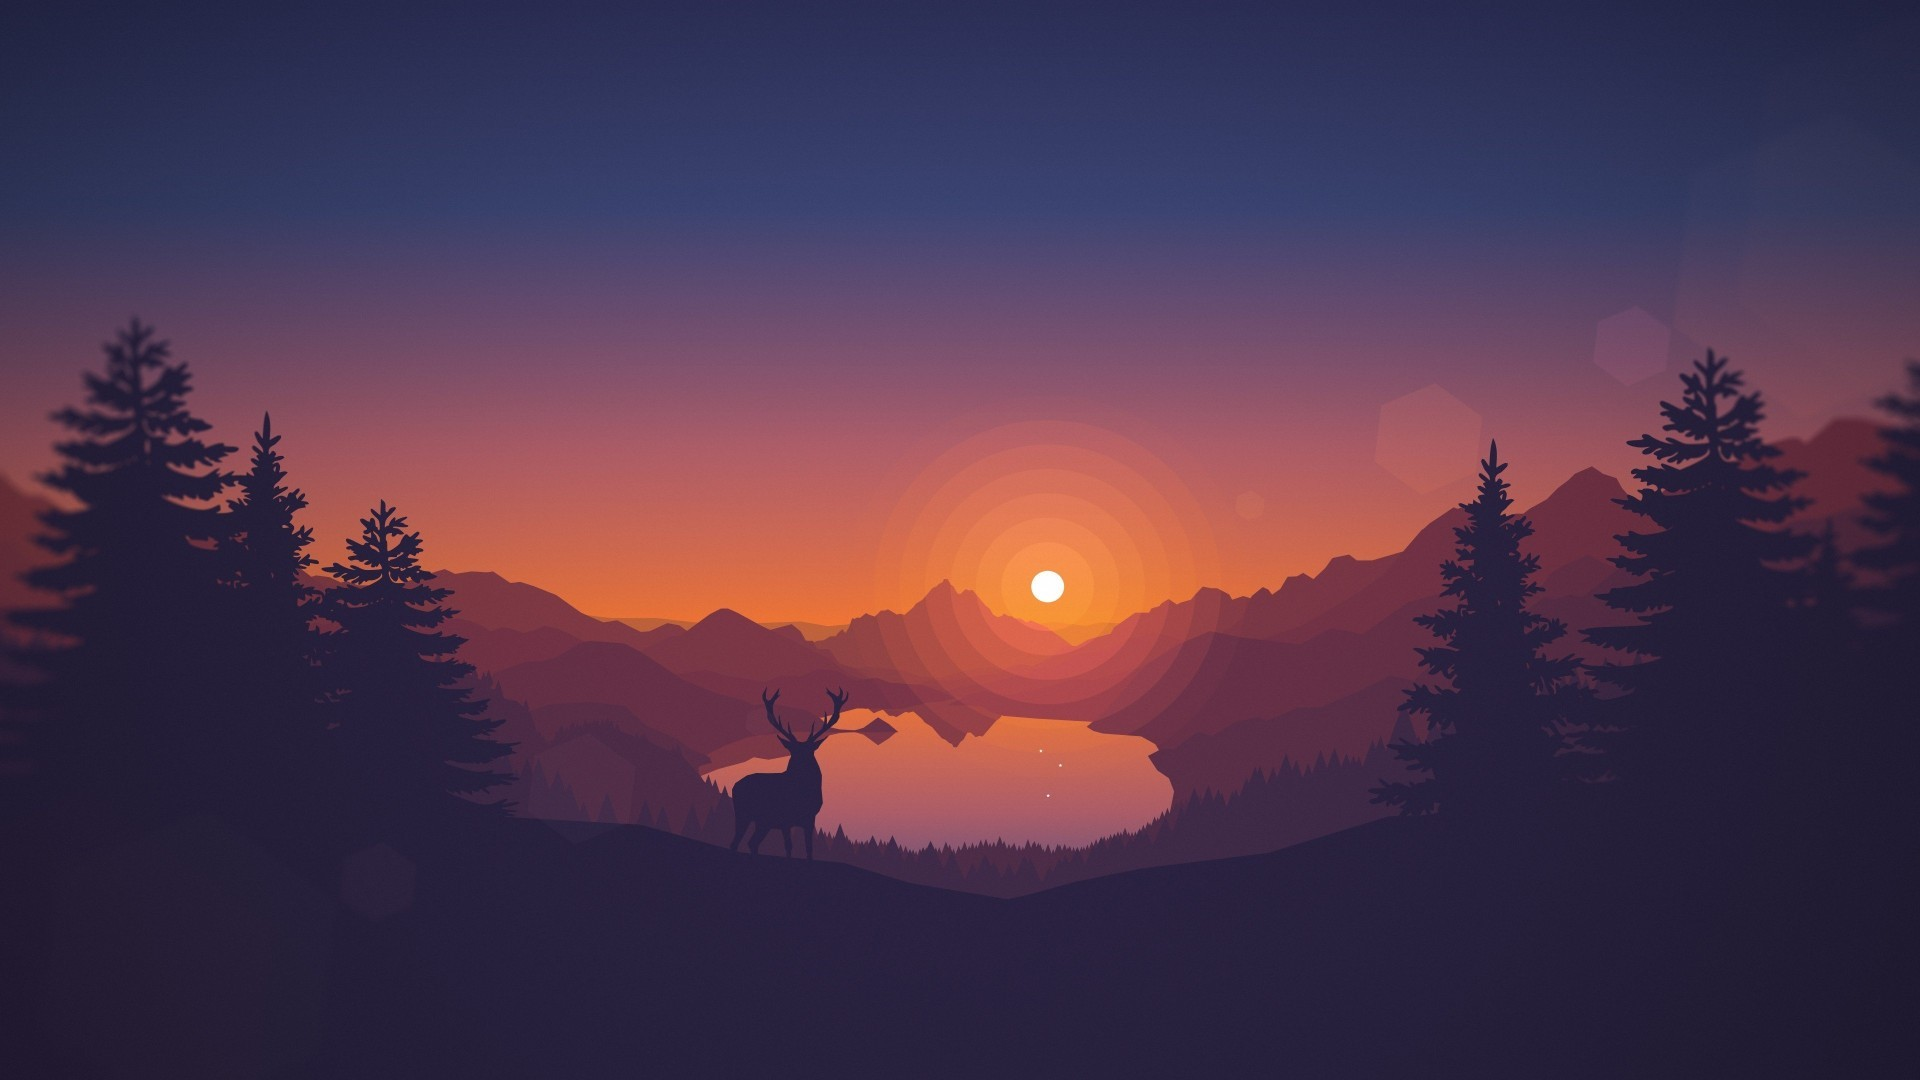 1920x1080 - Minimalist Wallpaper 1920x1080 15